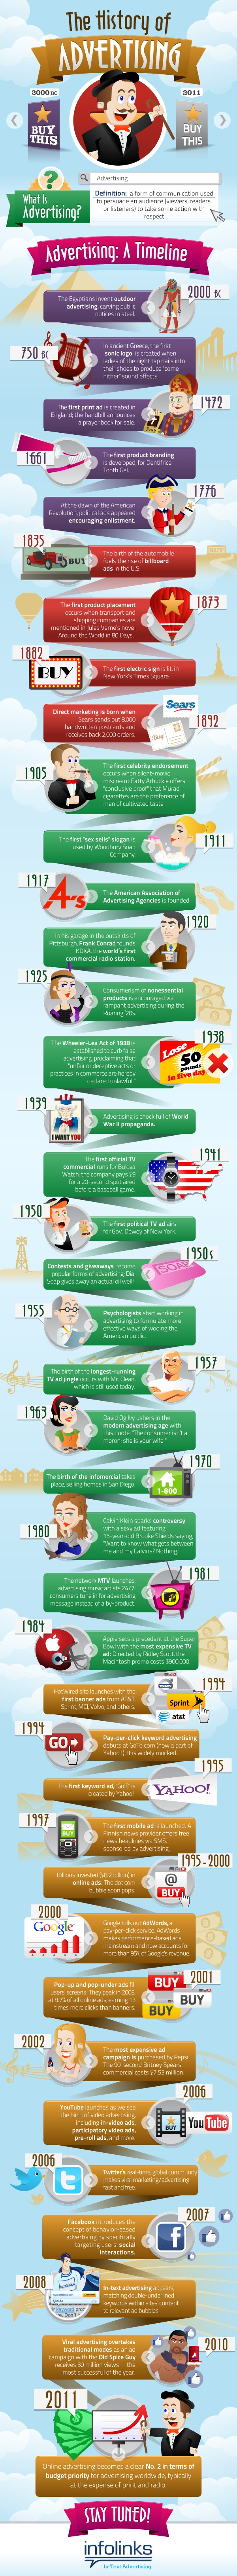 History of Advertising Infographic